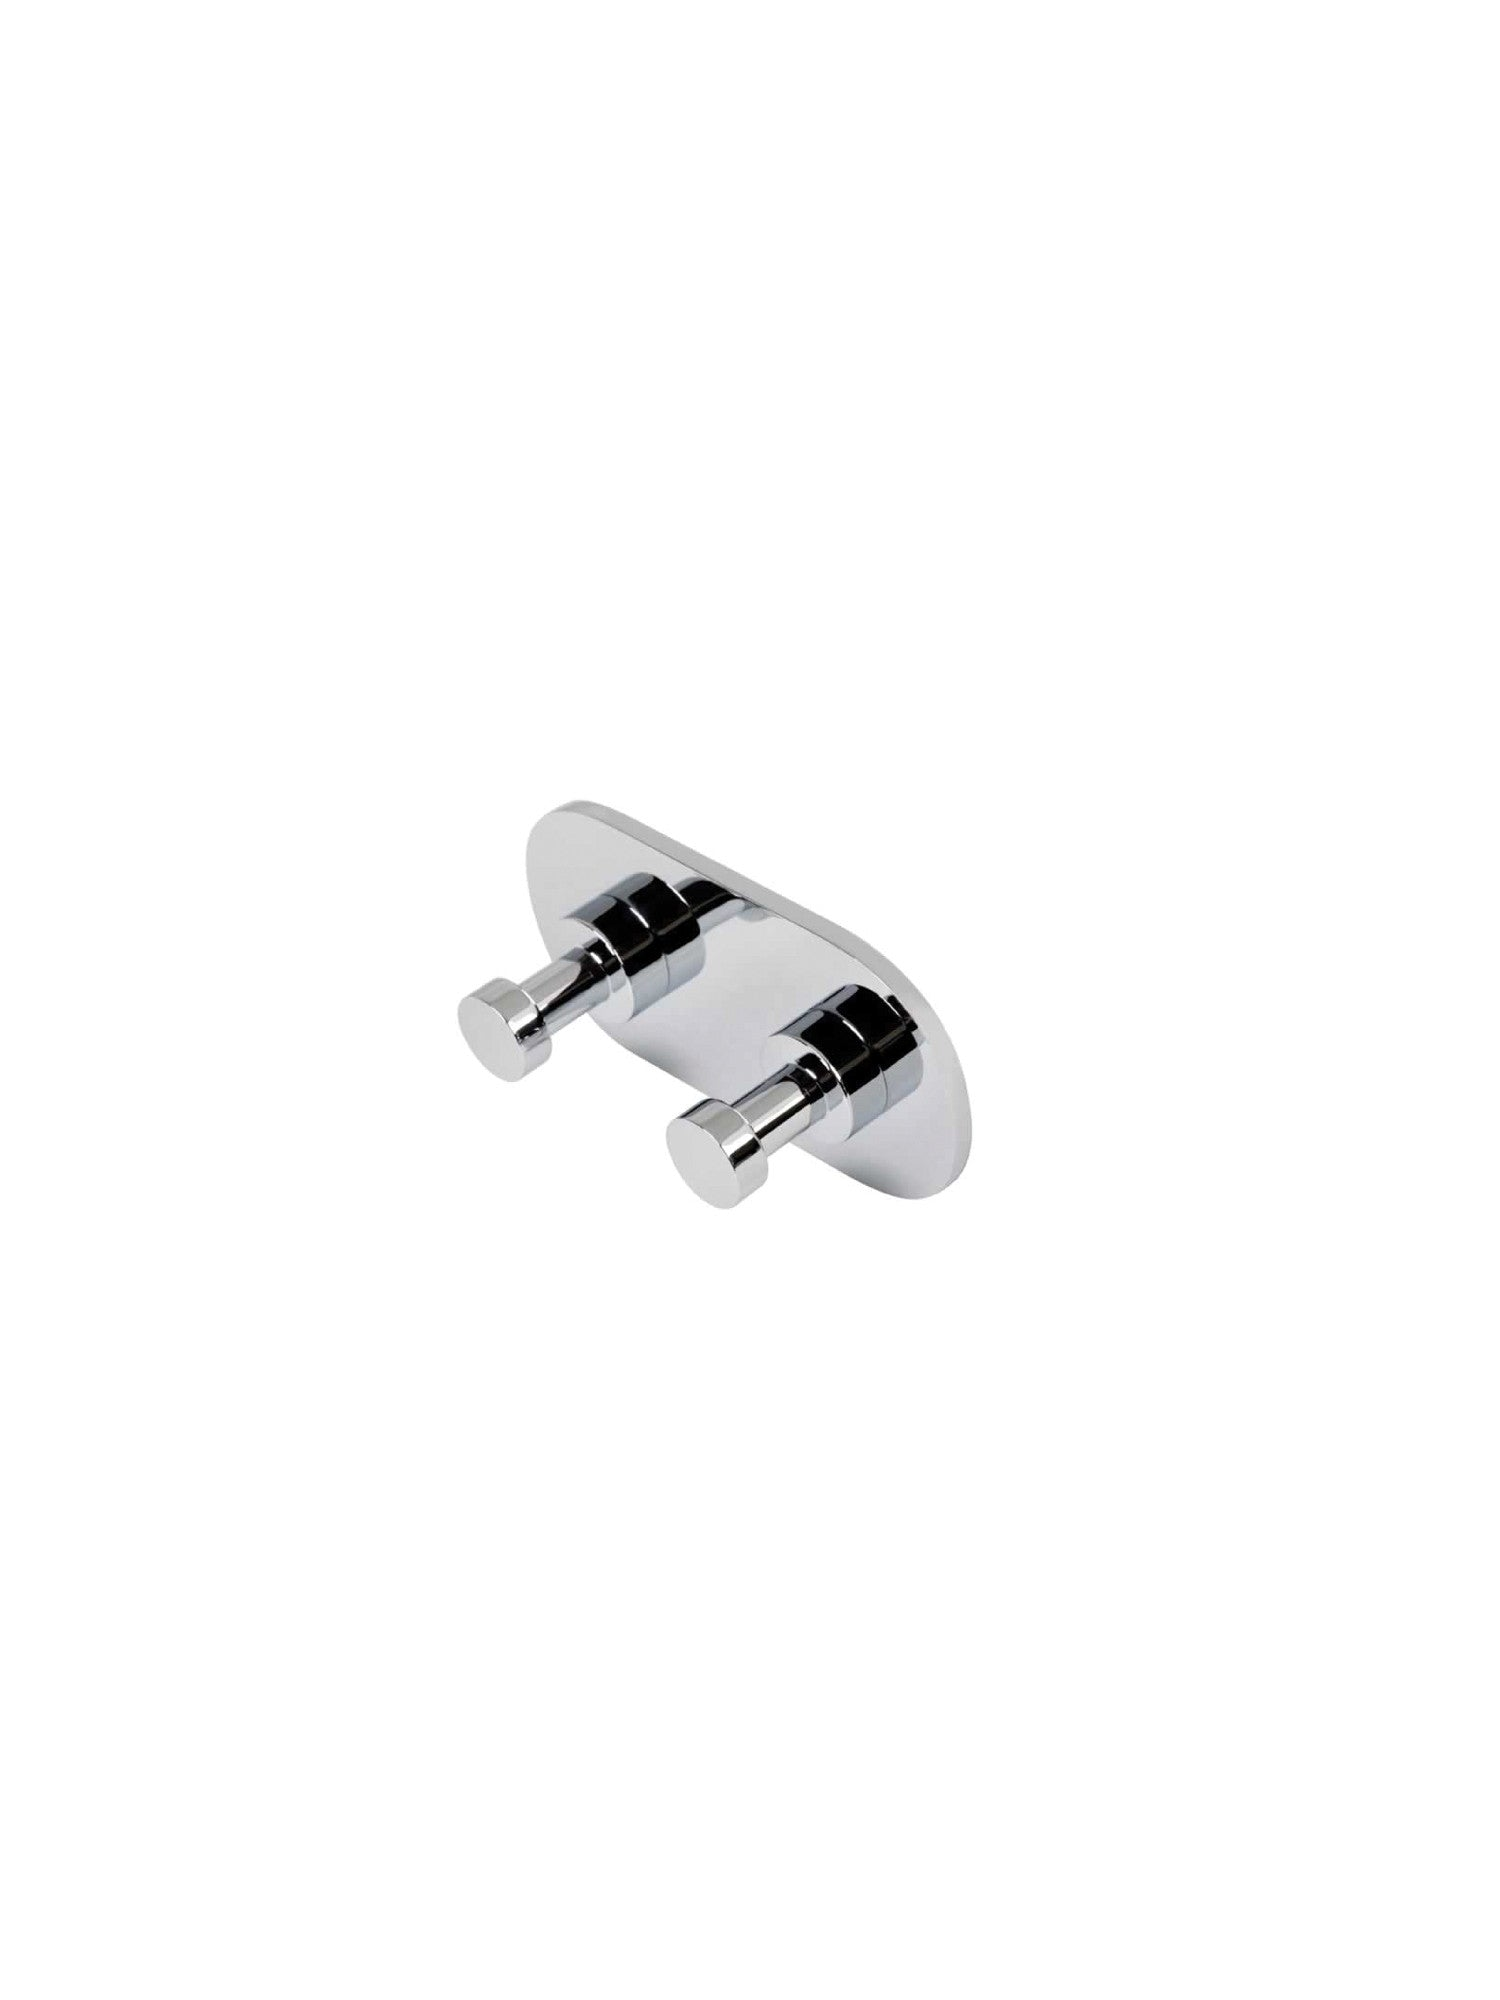 Nemox Coat / Towel Hook Double #6515